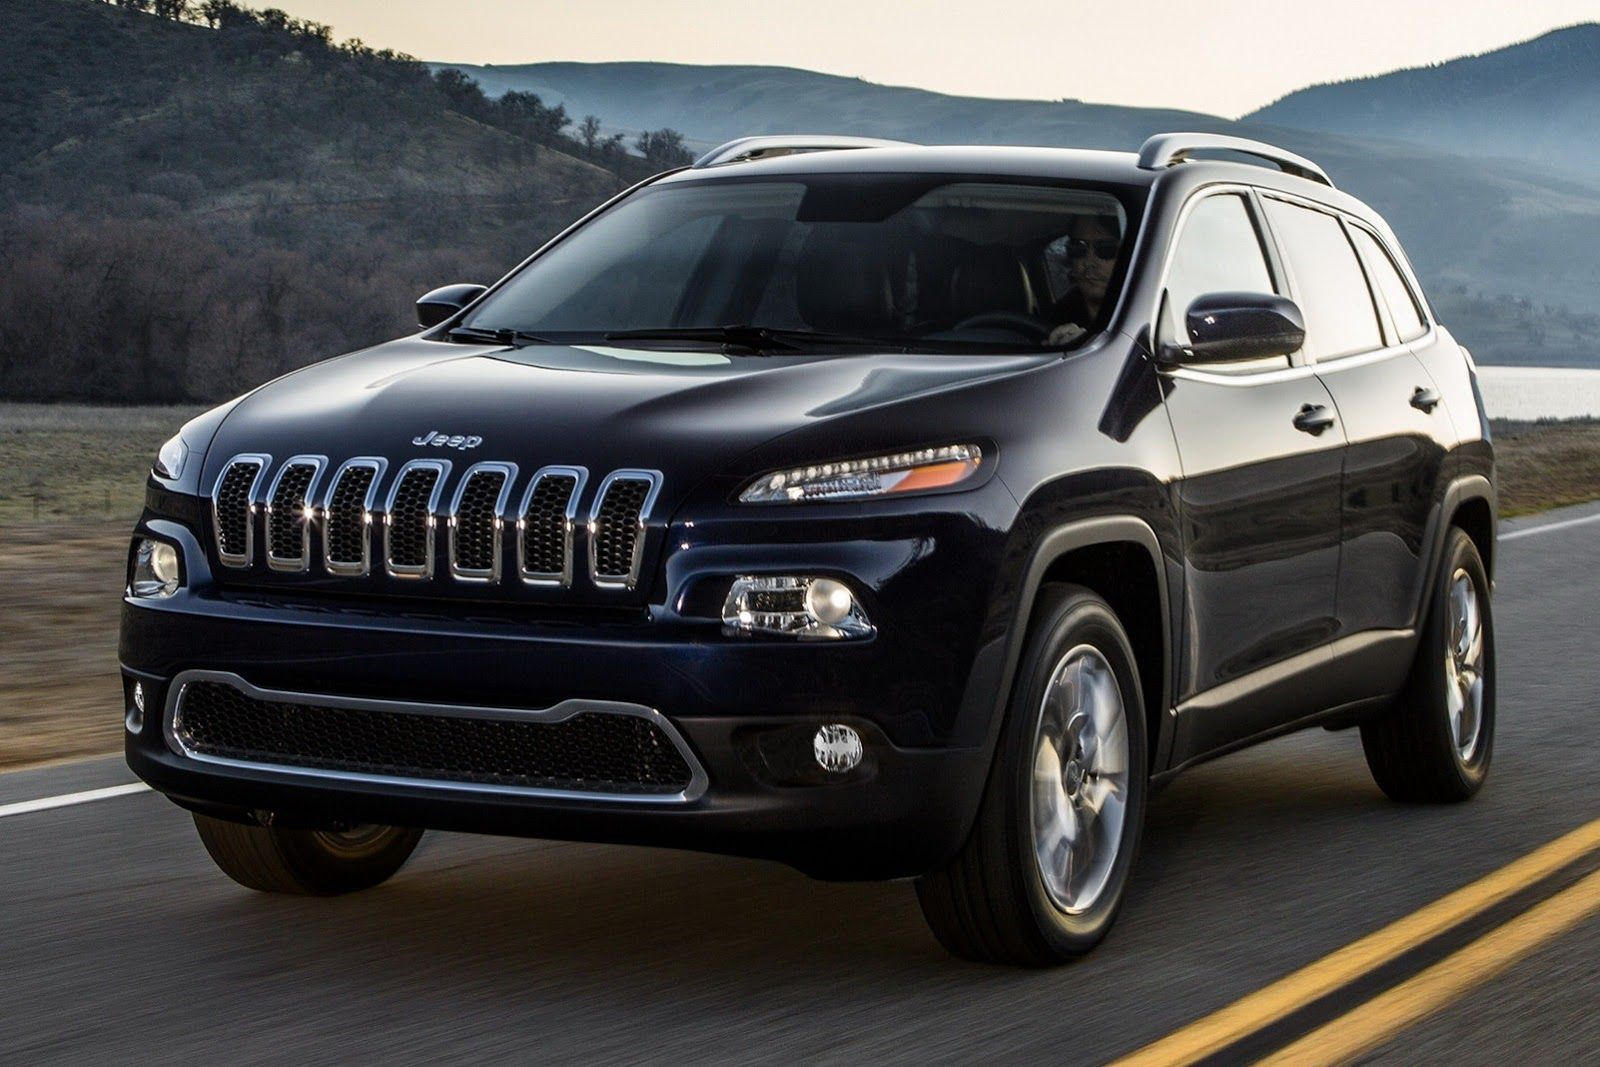 2014 Jeep Grand Cherokee Review Pricing Features Specs Pictures Jeep Cherokee Limited Jeep Cherokee Jeep Cherokee 2017